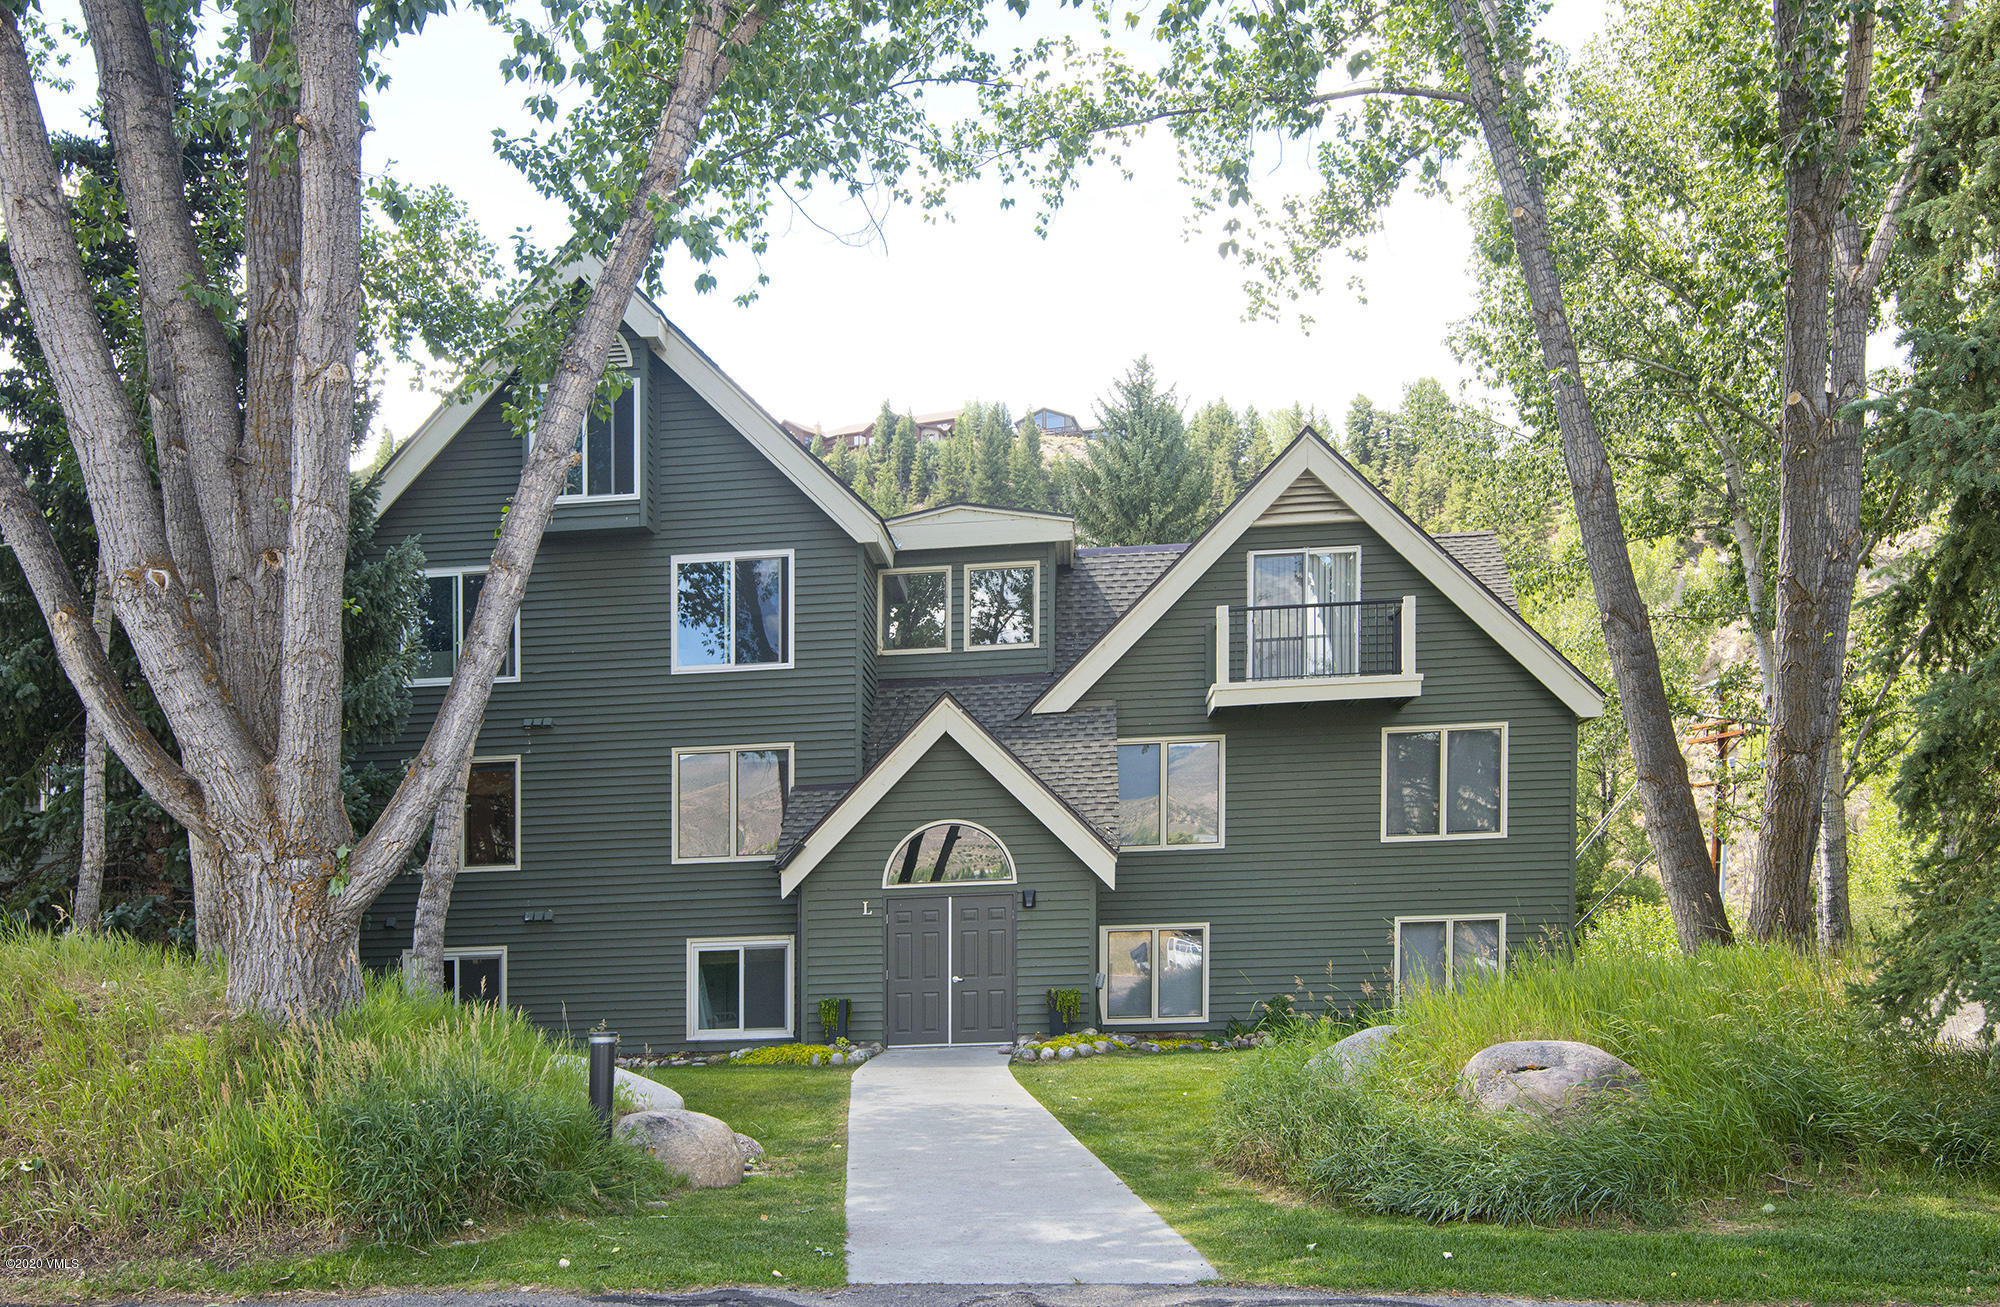 Don't miss an opportunity to have your own slice of heaven in the heart of it all.  This updated 2 BD in the Reserve offers a community pool and clubhouse overlooking the beautiful mountains and the Eagle River.  The Wood burning stove, makes a cozy and efficient heating ambience.   Walking distance to Riverwalk and on the local Edwards bike path making this condo convenient for any of your adventures.  Just a short drive to Beaver Creek and easy access to Vail, this home is an ideal first, second or rental property.